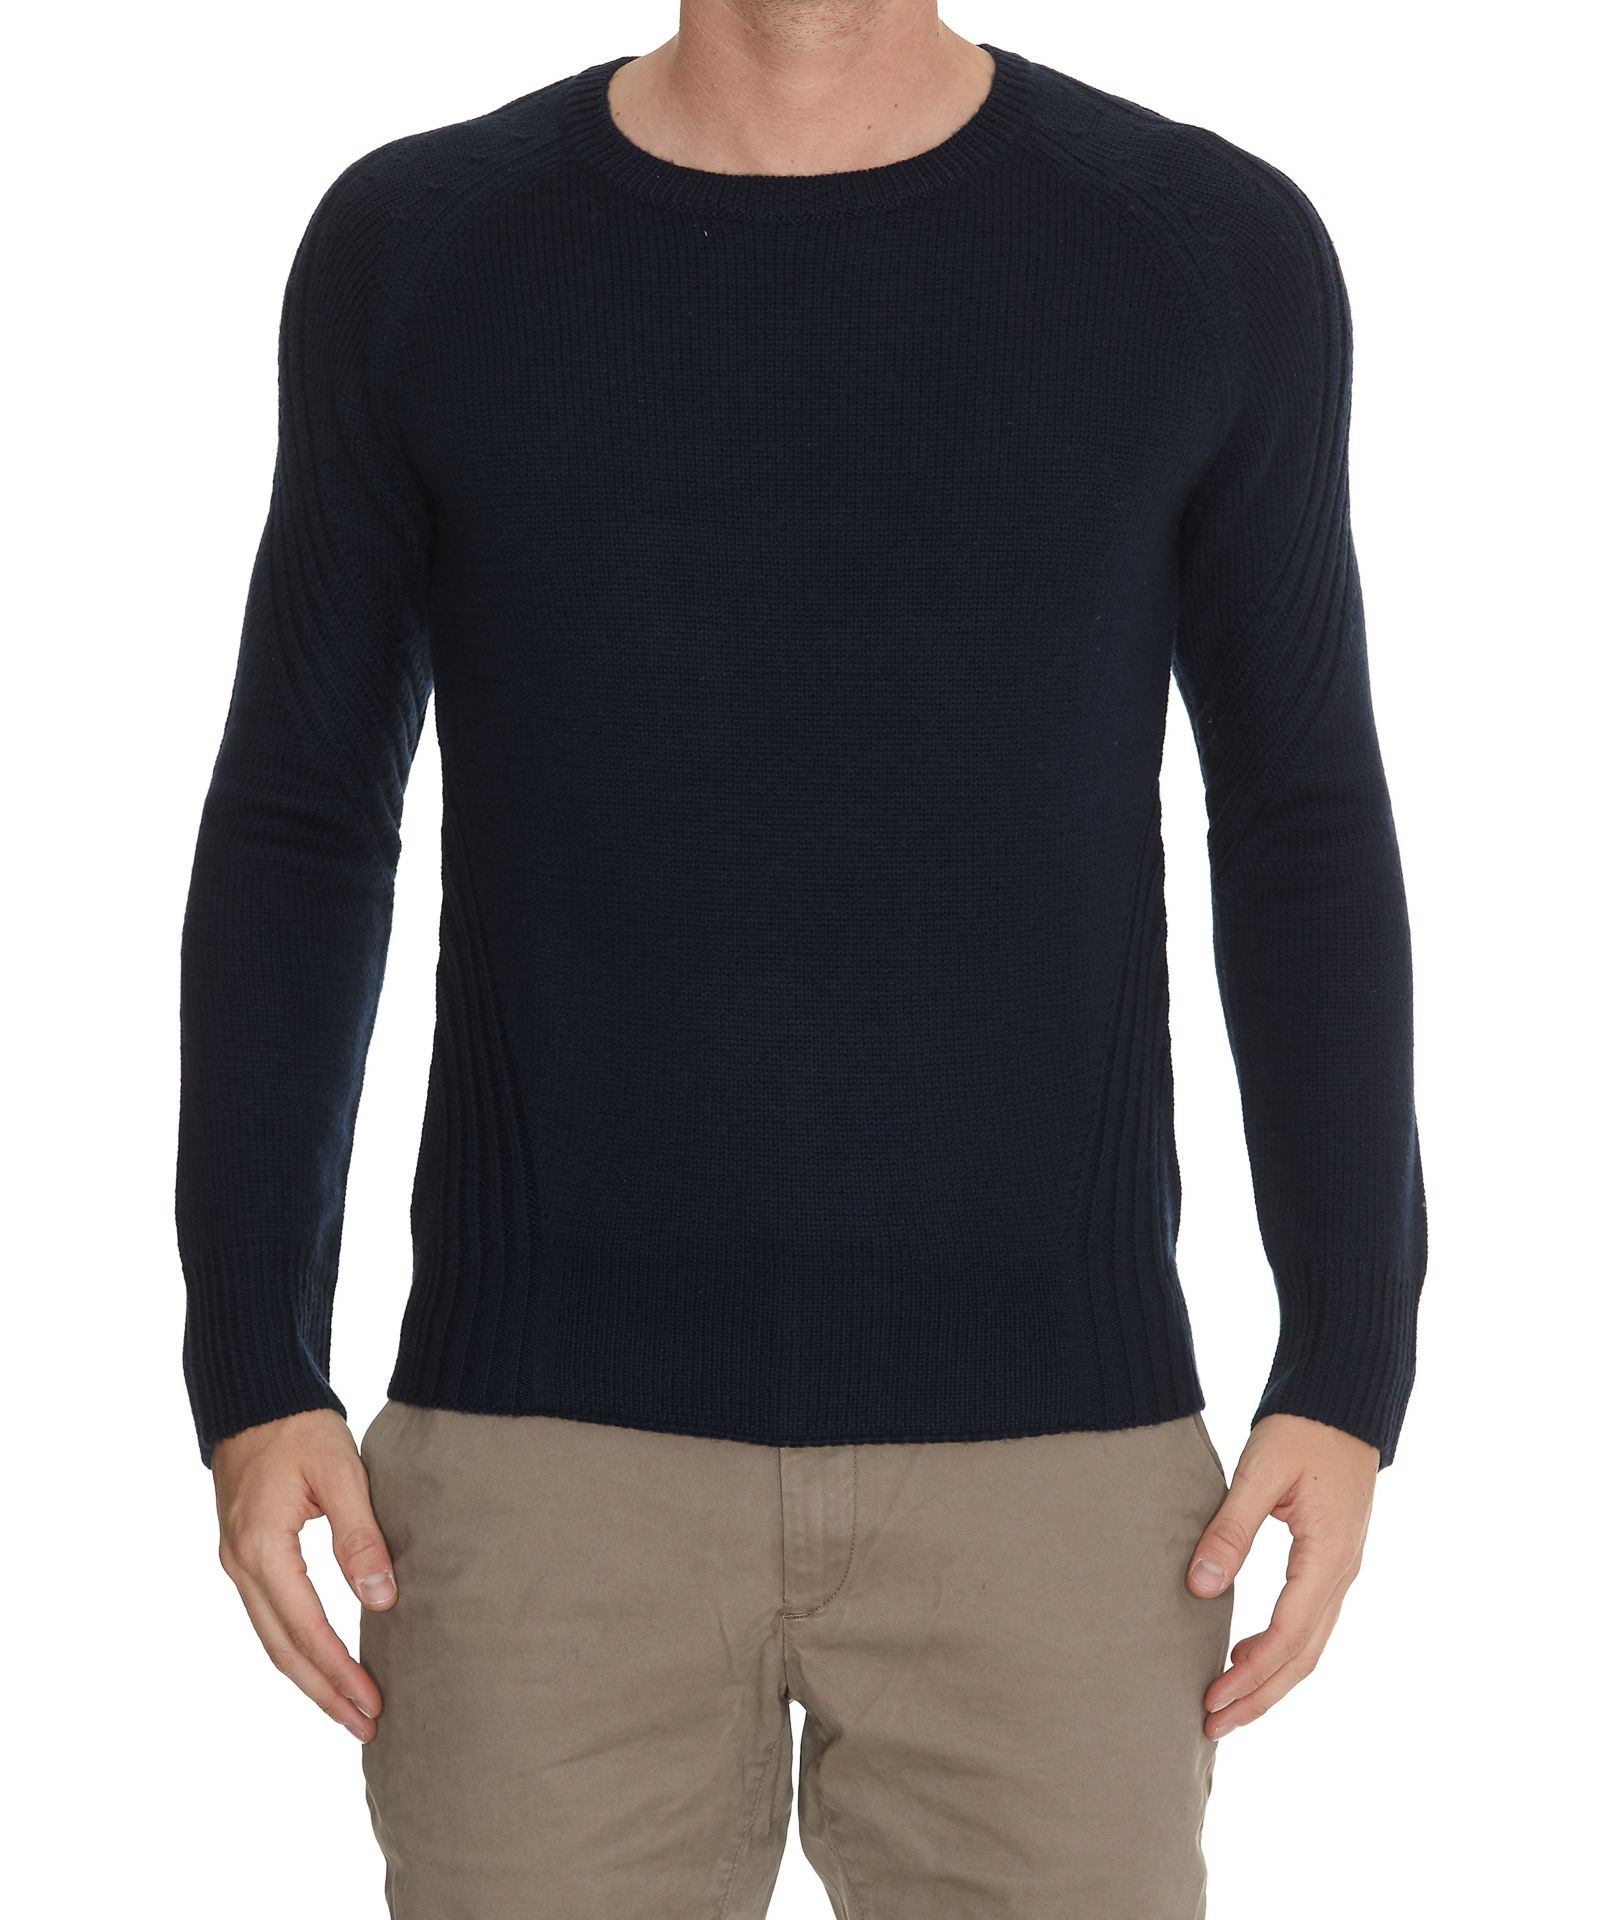 HŌSIO Crew Neck Jumper in Blue